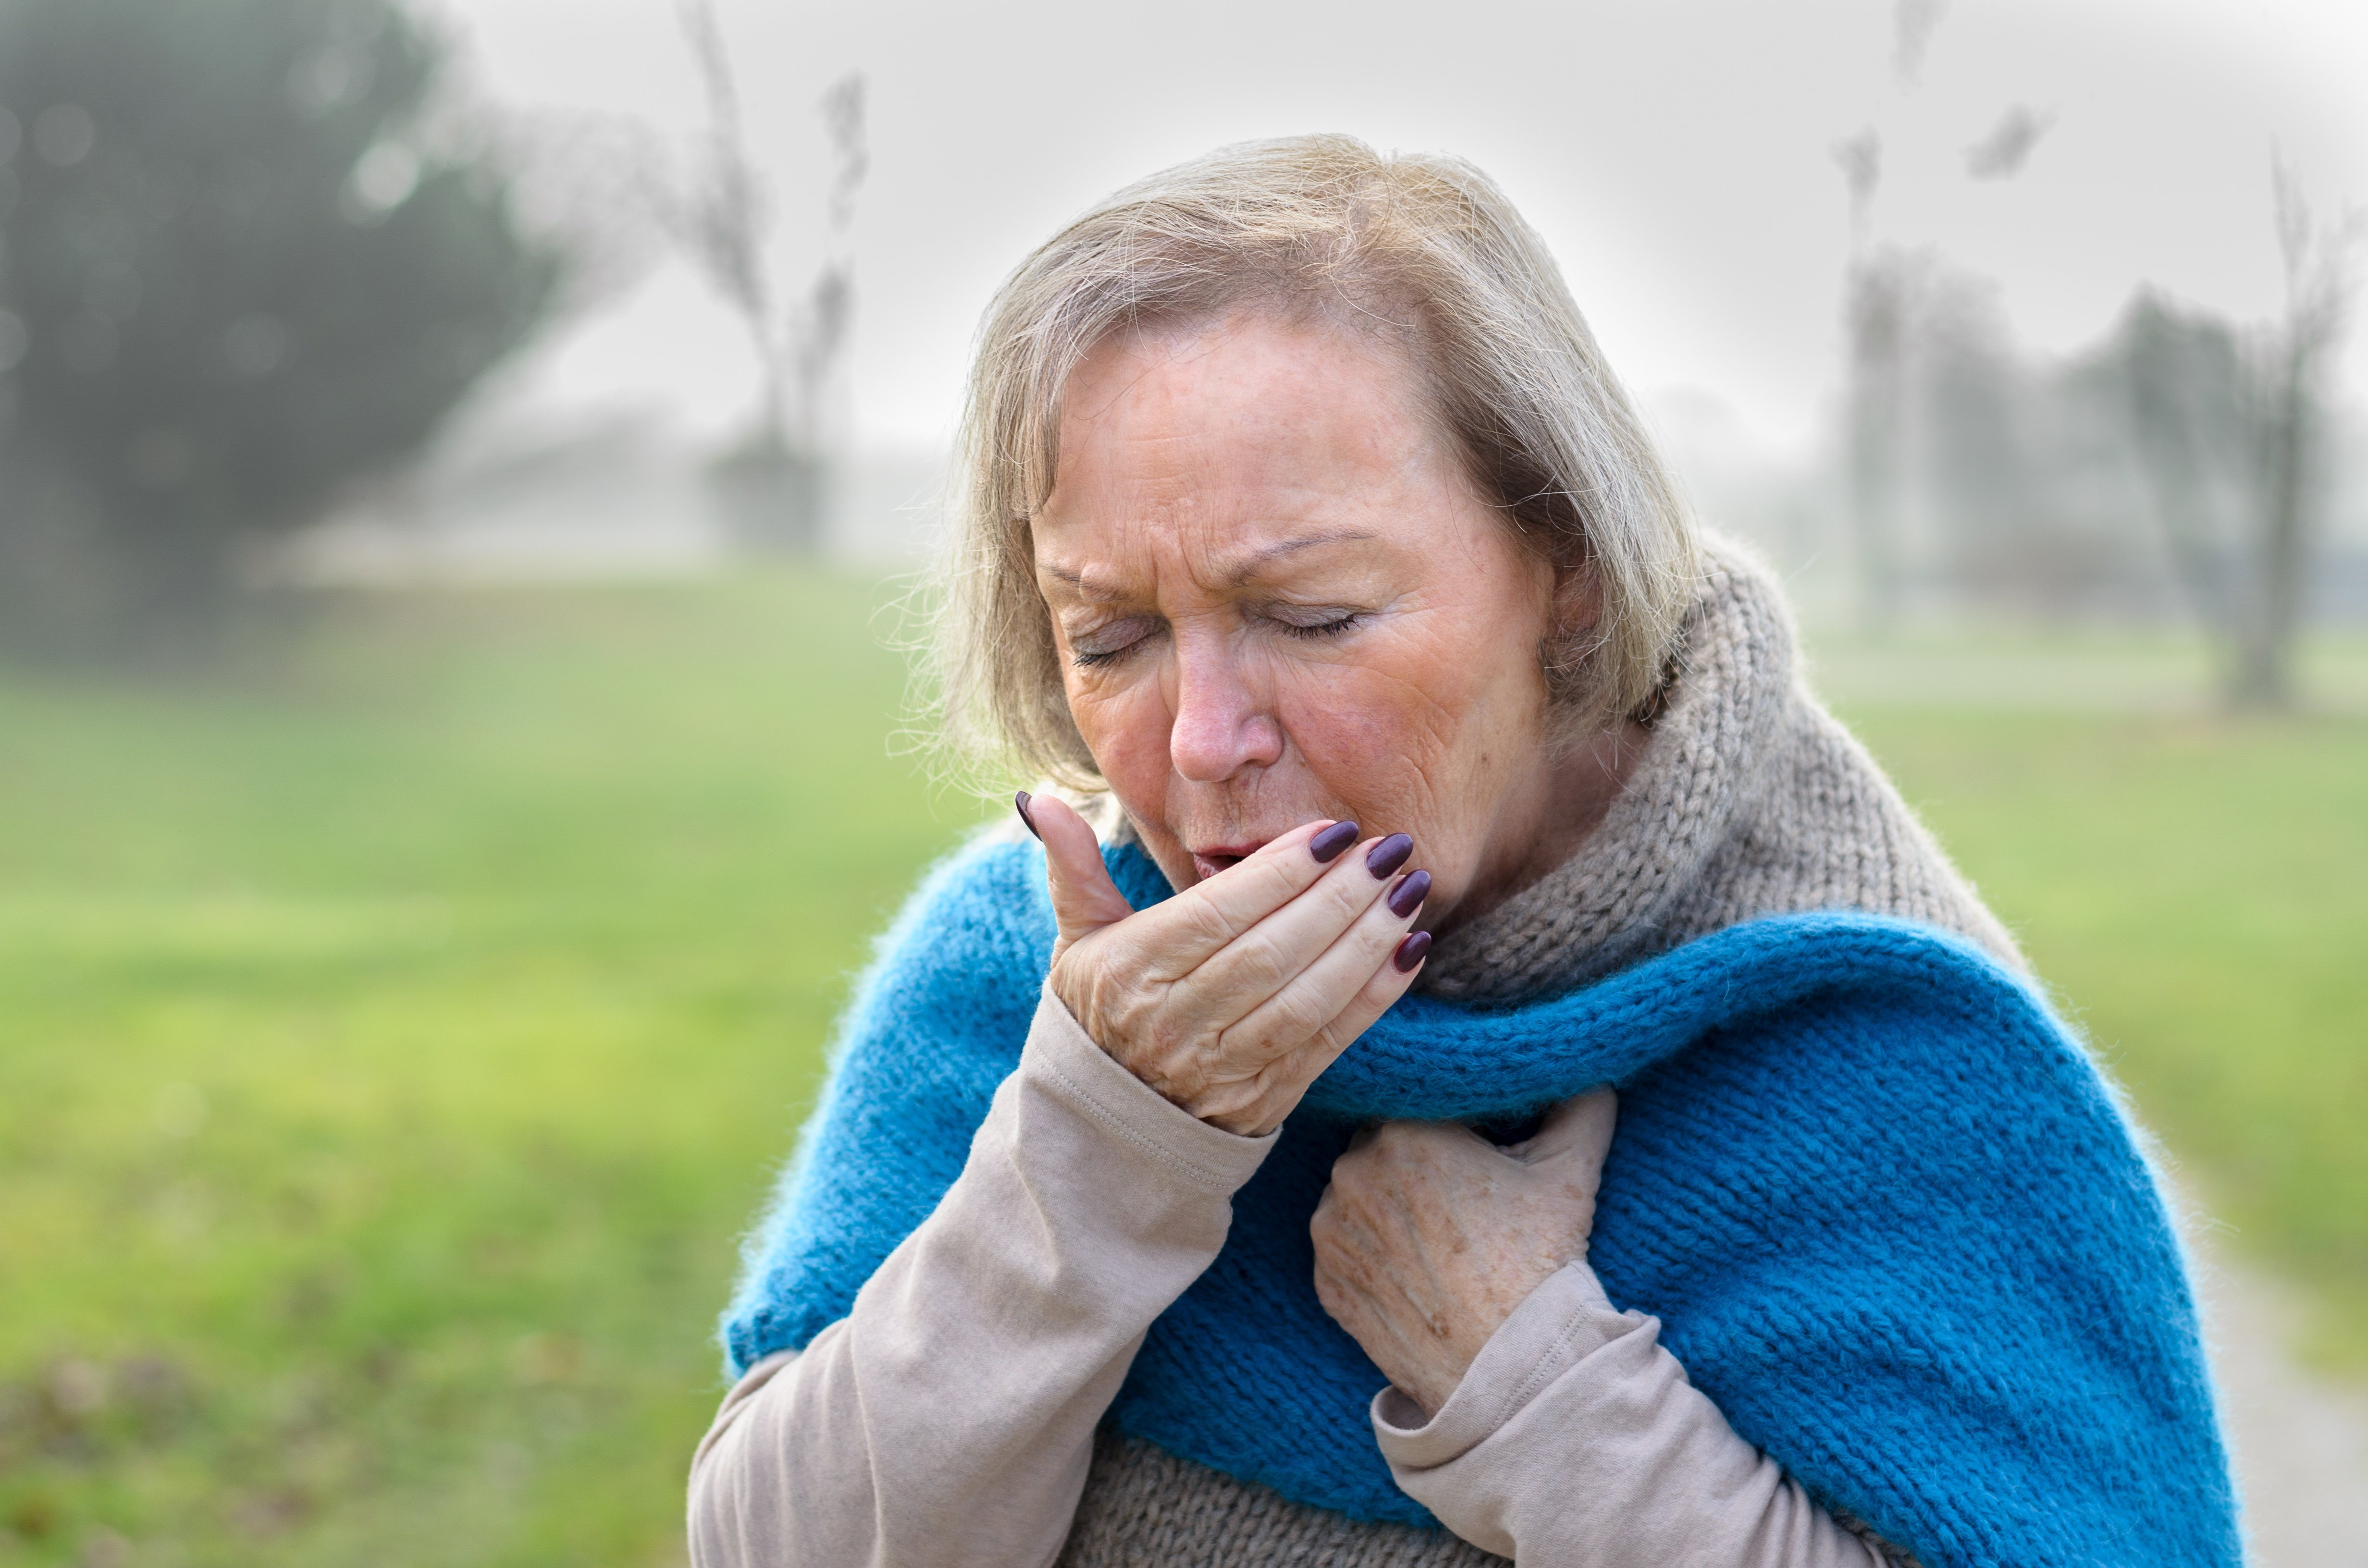 15 Cough Suppressing Techniques for People with COPD